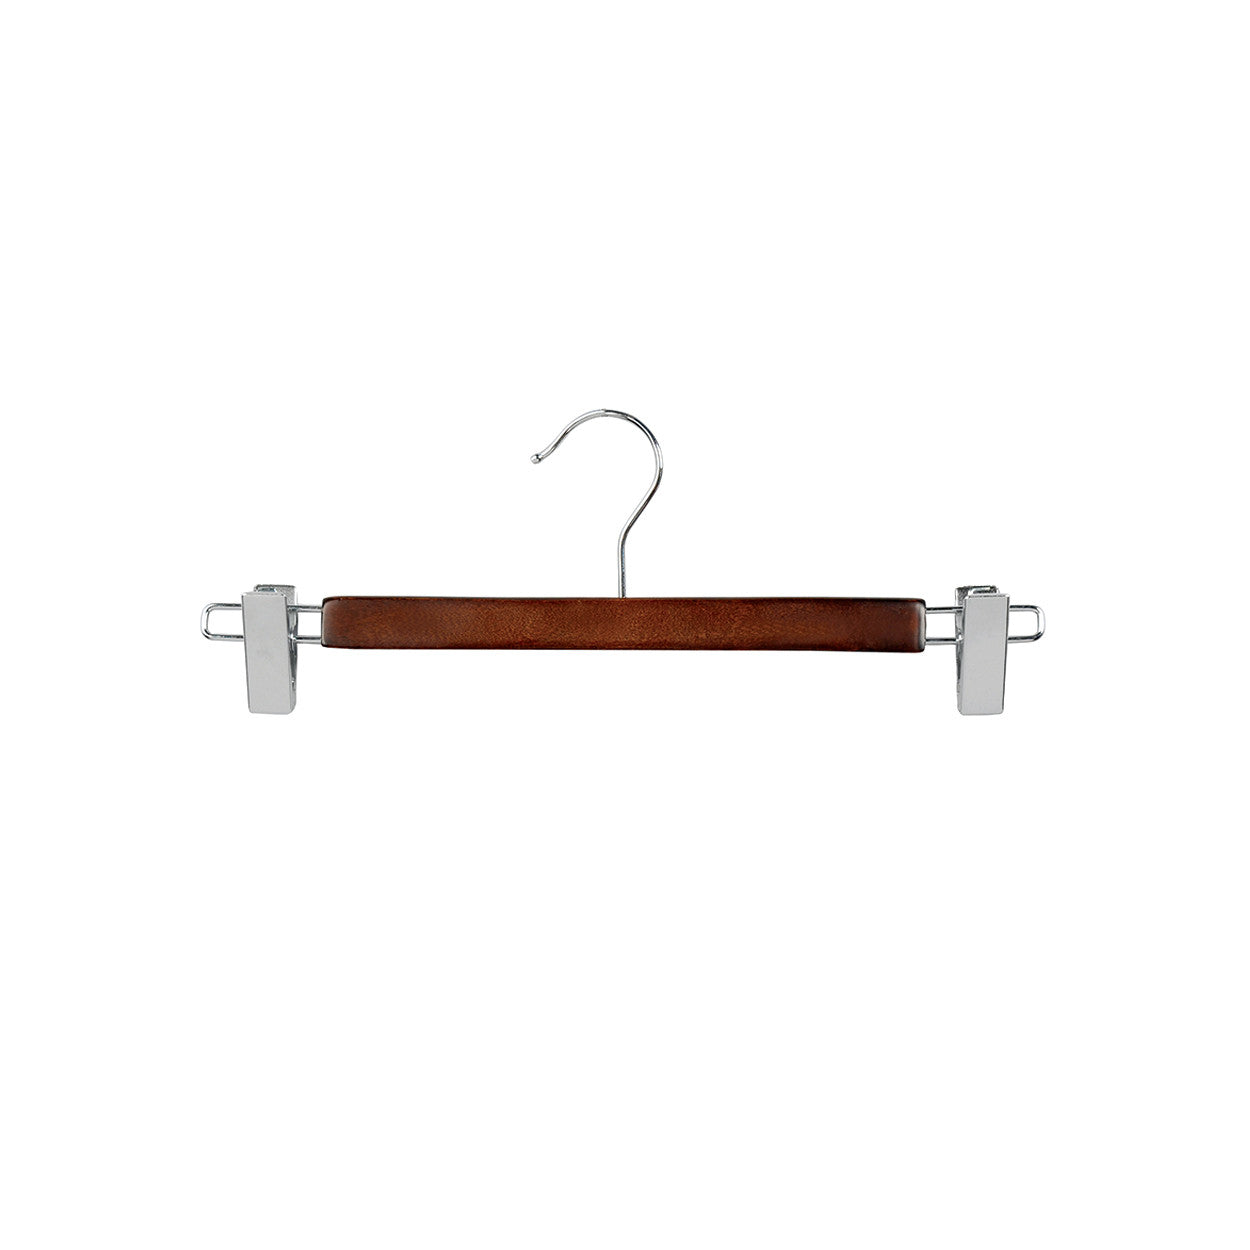 Wenge Clip Timber Hanger With Chrome Clips At Ends 330 W X 12Mm Thick (Box of 100)